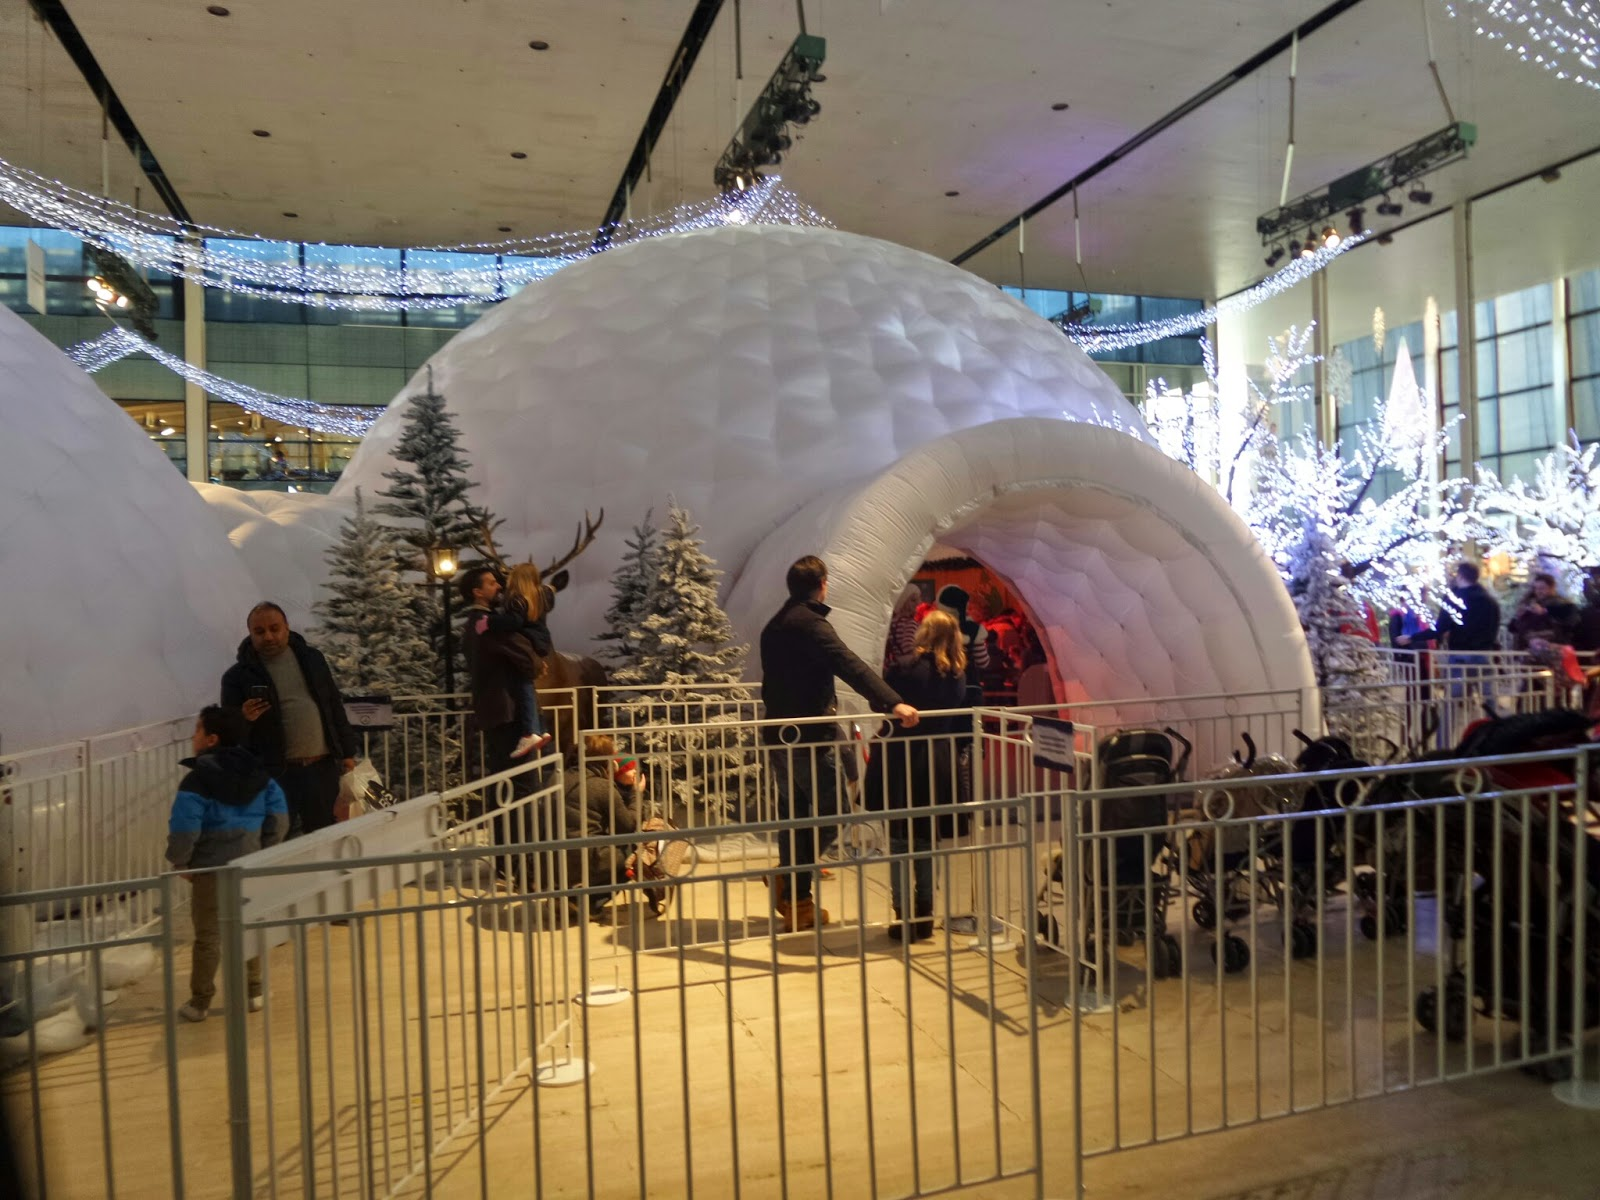 The Igloo at Milton Keynes, where you get to see Santa